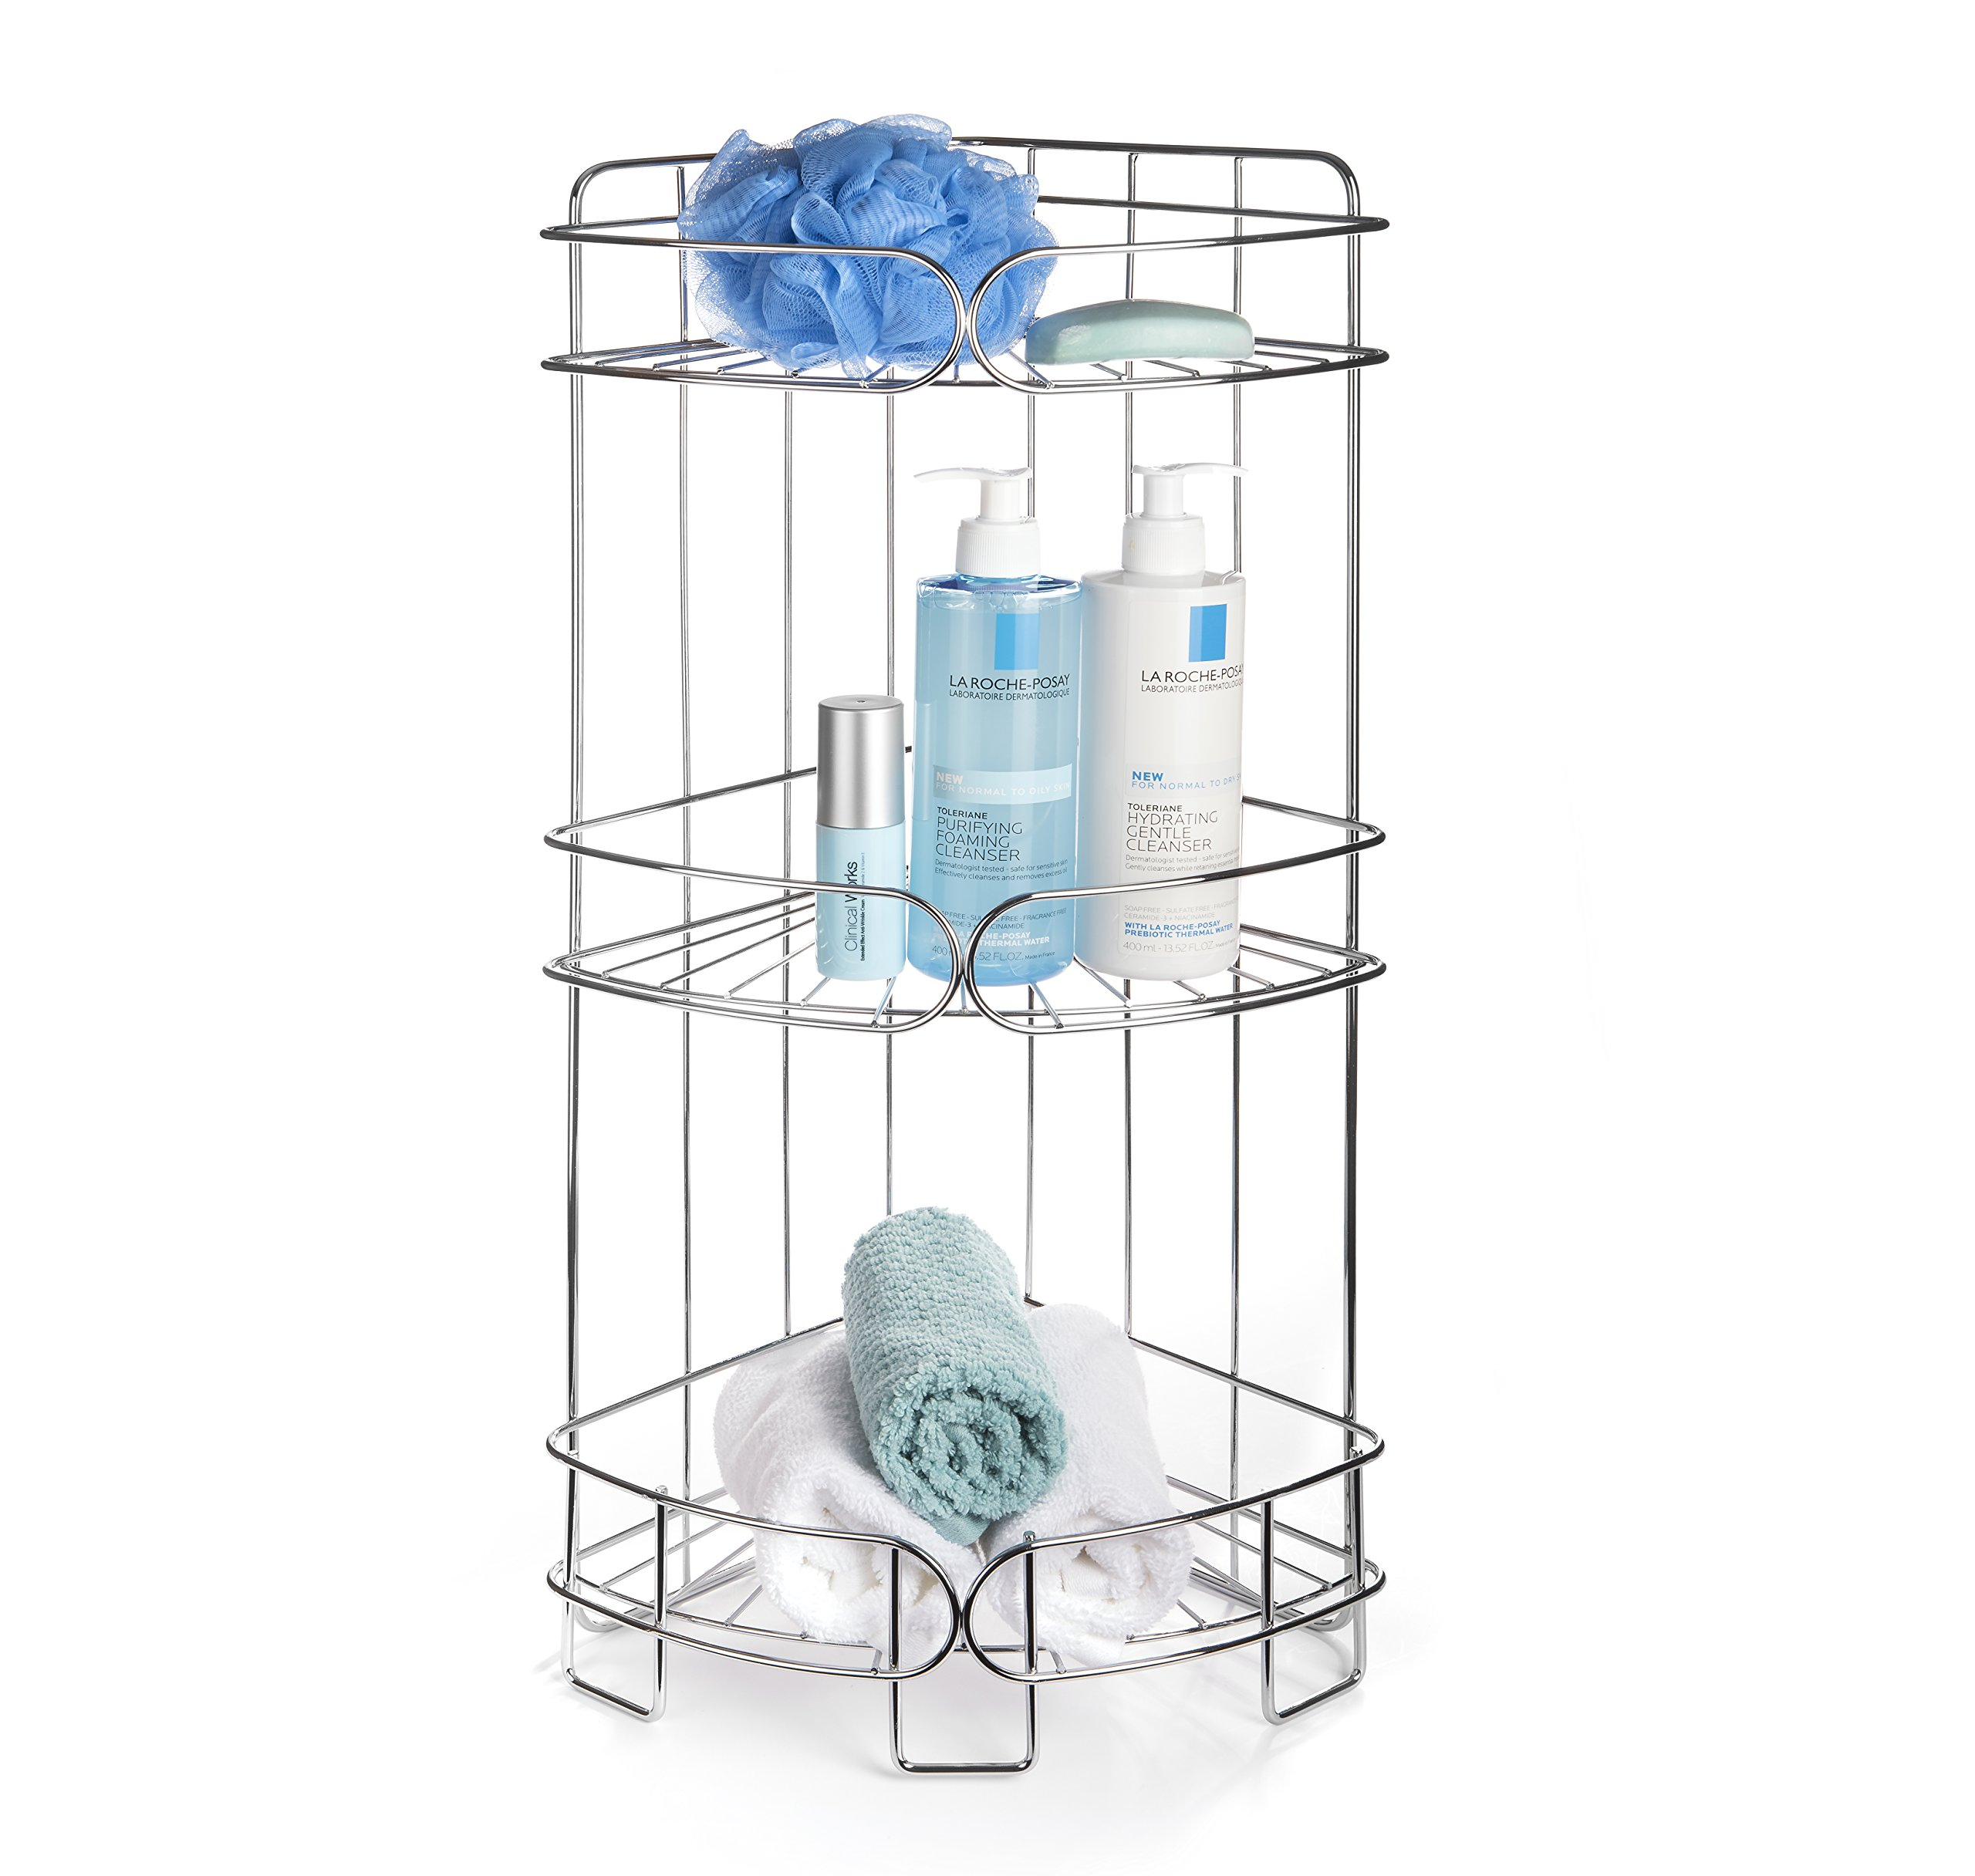 AMG and Enchante Accessories Free Standing Bathroom Spa Tower Storage Caddy, FC100004 CHR, Chrome